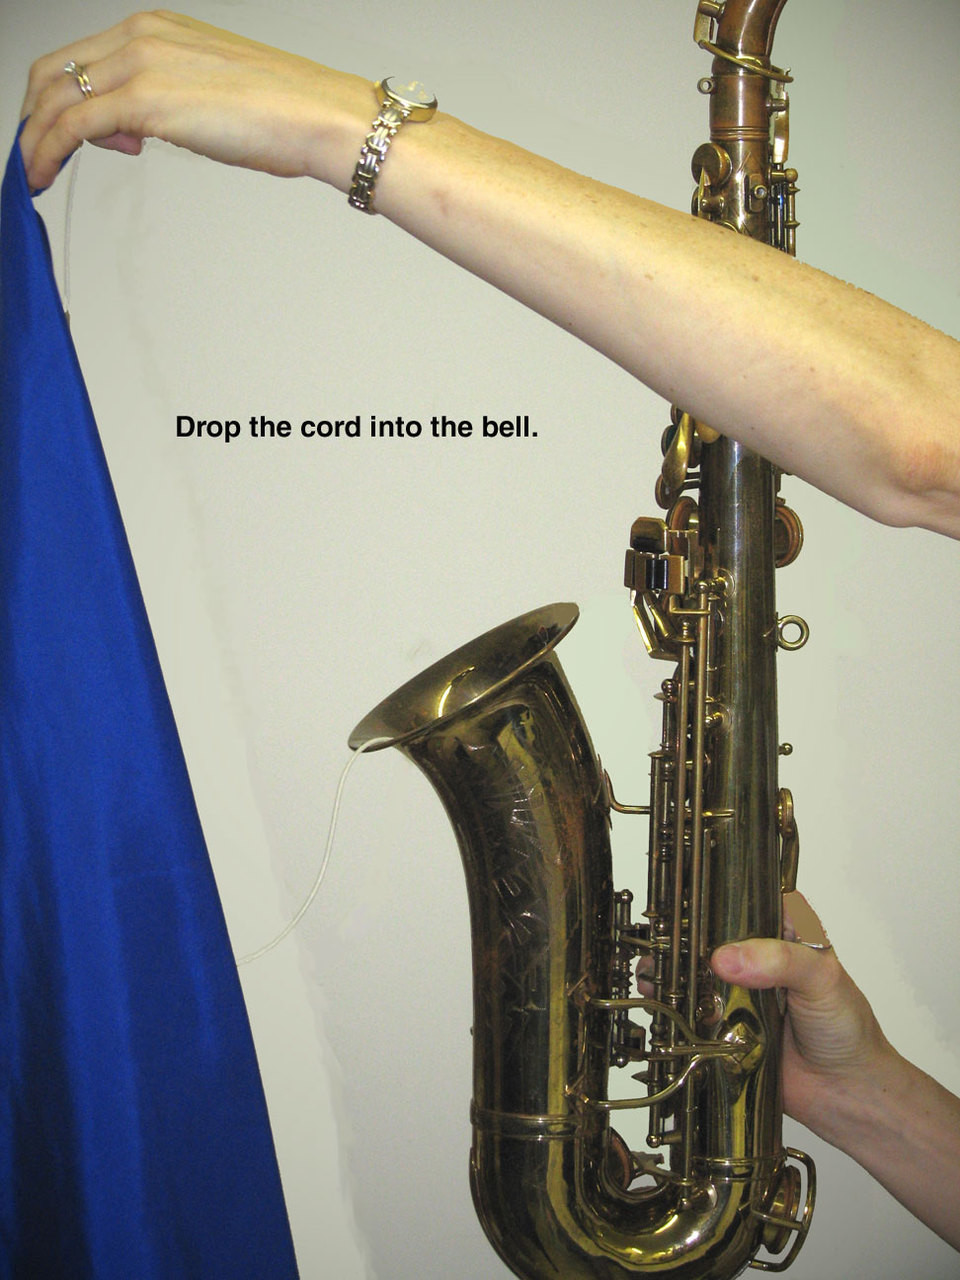 Hodge Alto Sax Silk Swab Step 2 - Drop weight into bell